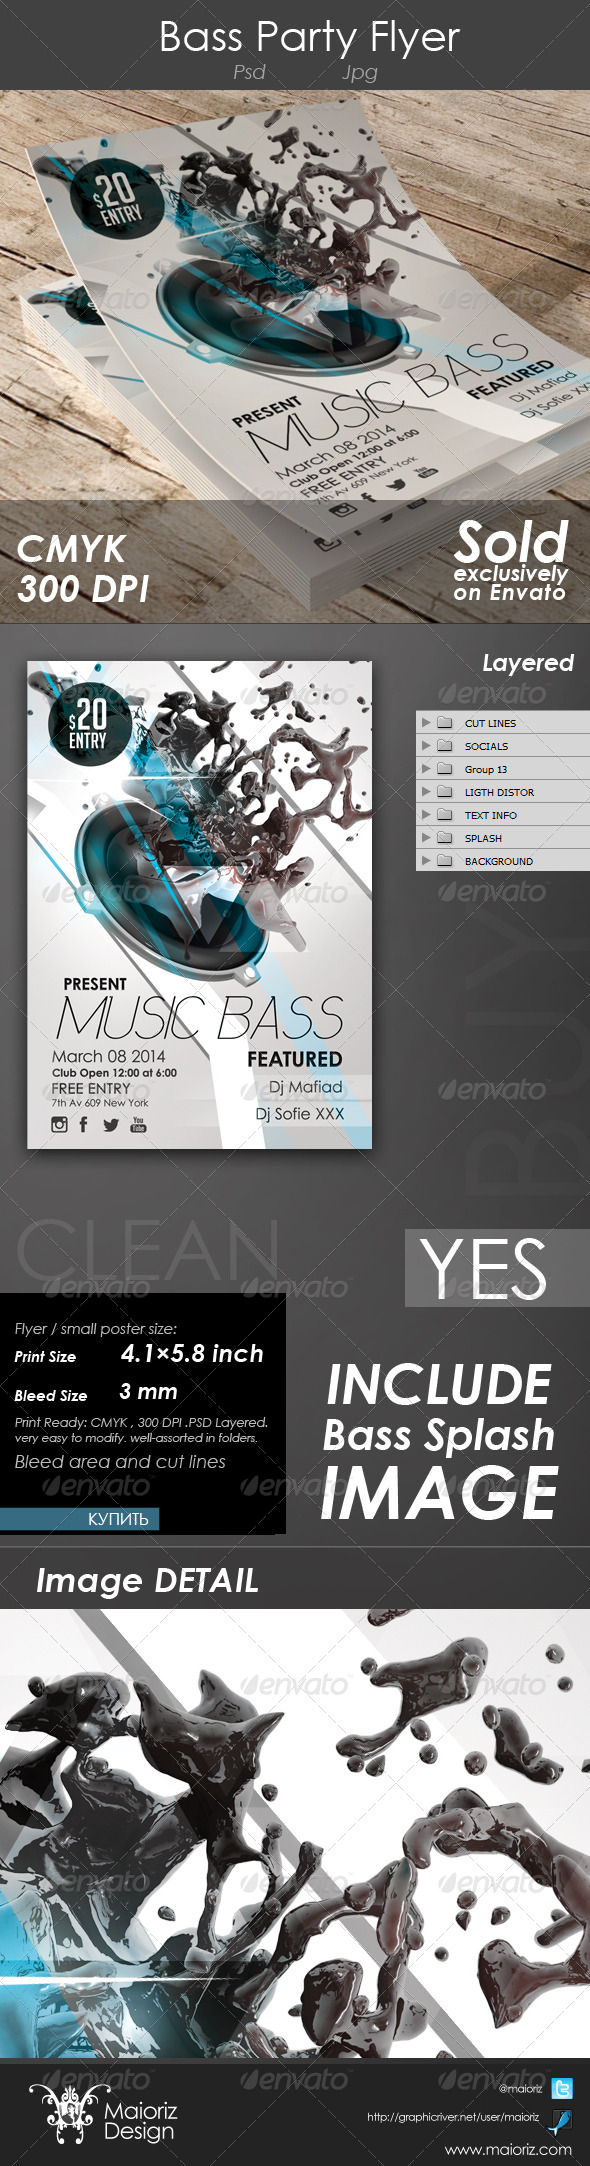 Bass Party Flyer - Clubs & Parties Events